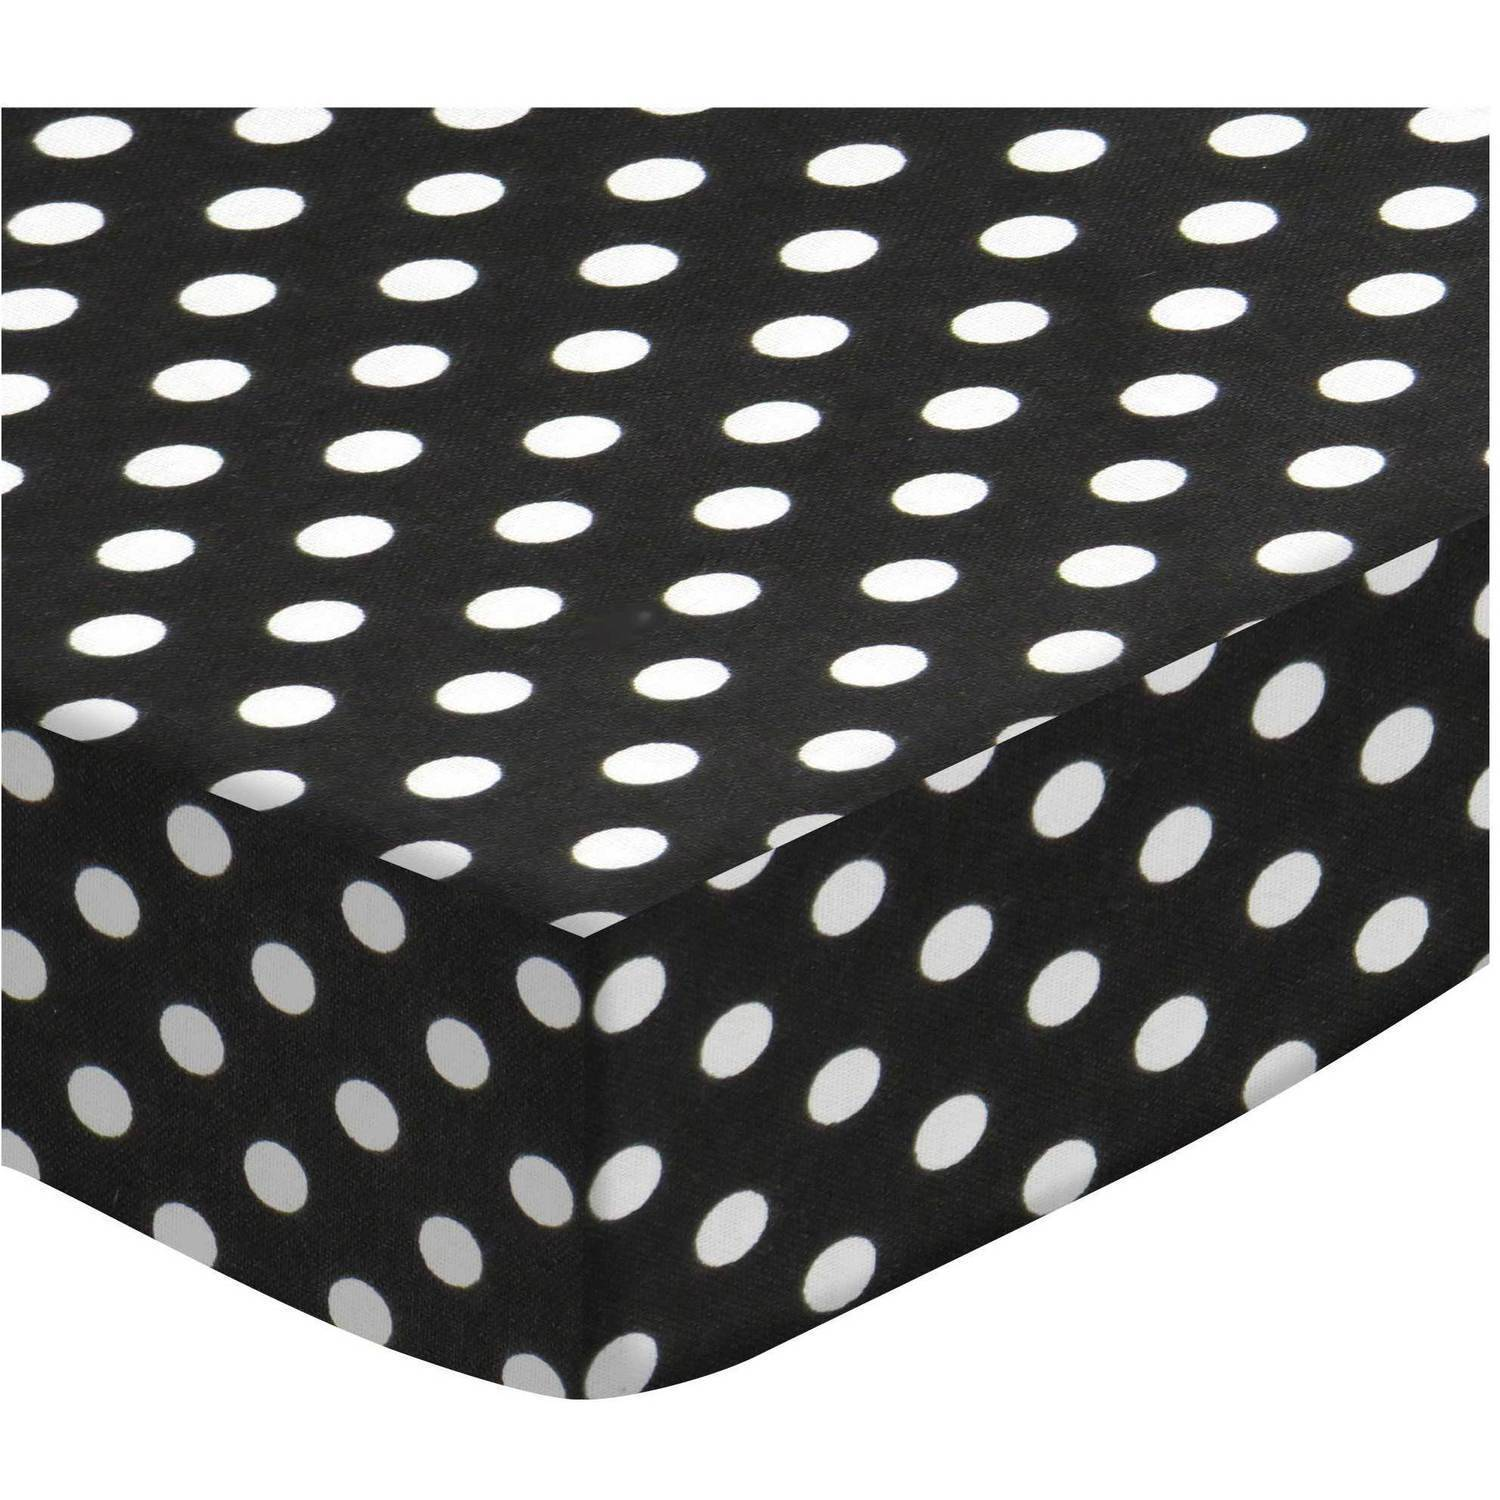 SheetWorld Fitted Oval Crib Sheet (Stokke Sleepi) - Primary Polka Dots Black Woven